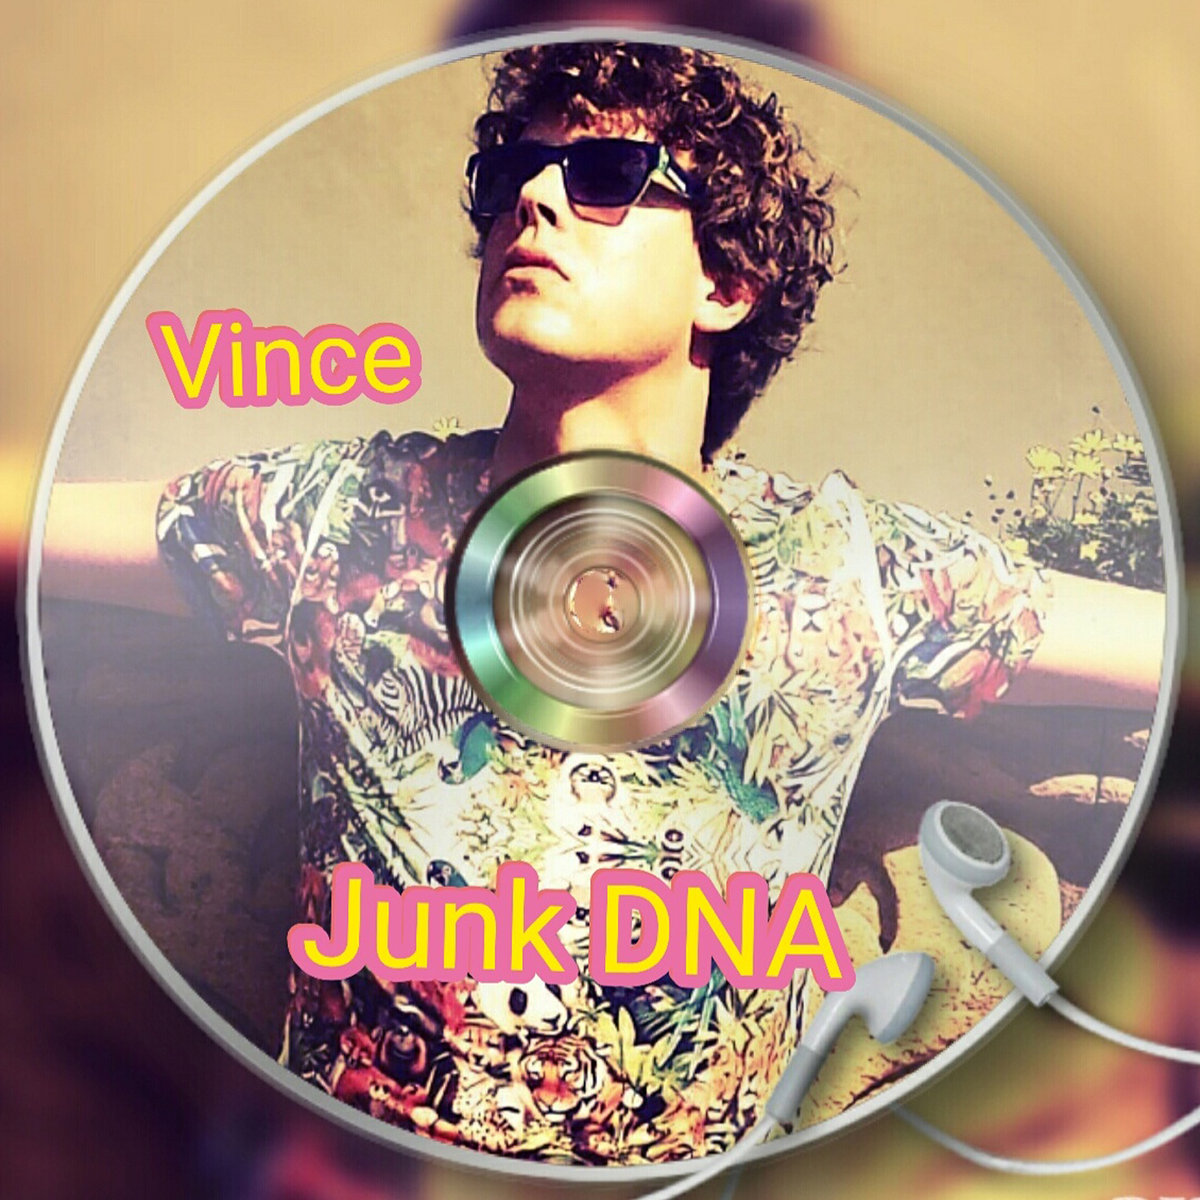 Vince - The Healing Garden @ 'Junk DNA' album (pop, pop punk)